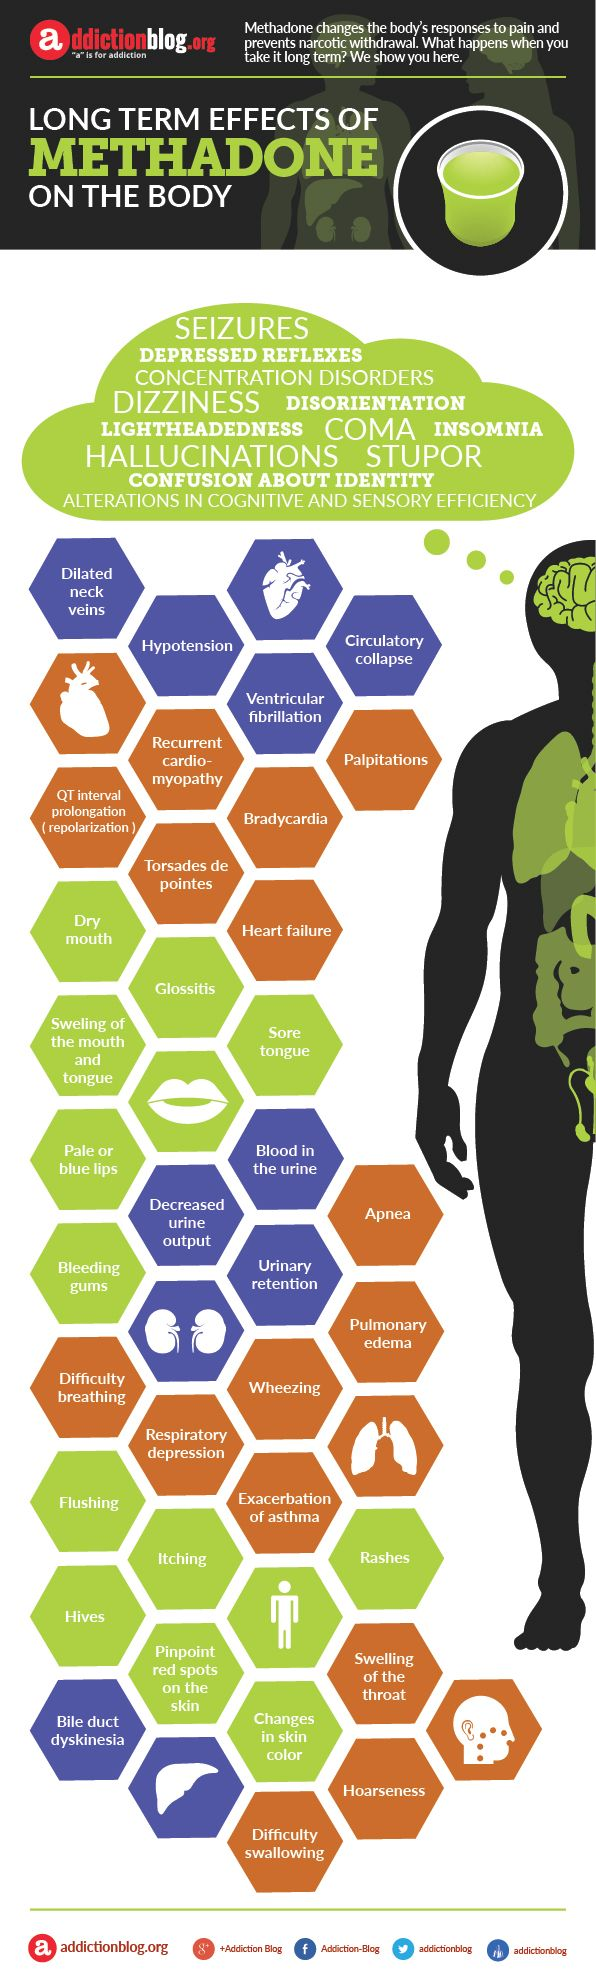 Long term effects of methadone on the body. Most people don't know that methadone is harder to detox from, than heroin. It does not get off drugs.  It is very dangerous and addictive.